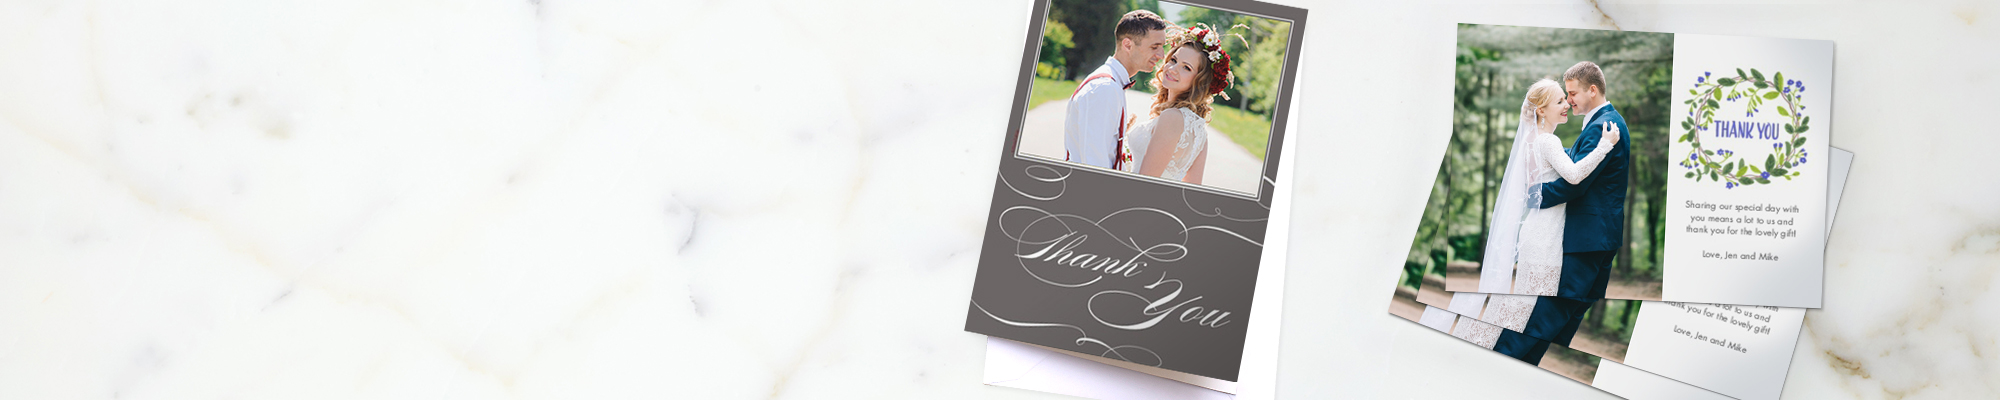 Wedding Cards Personalised cards to send to your family and friends to share in your special day